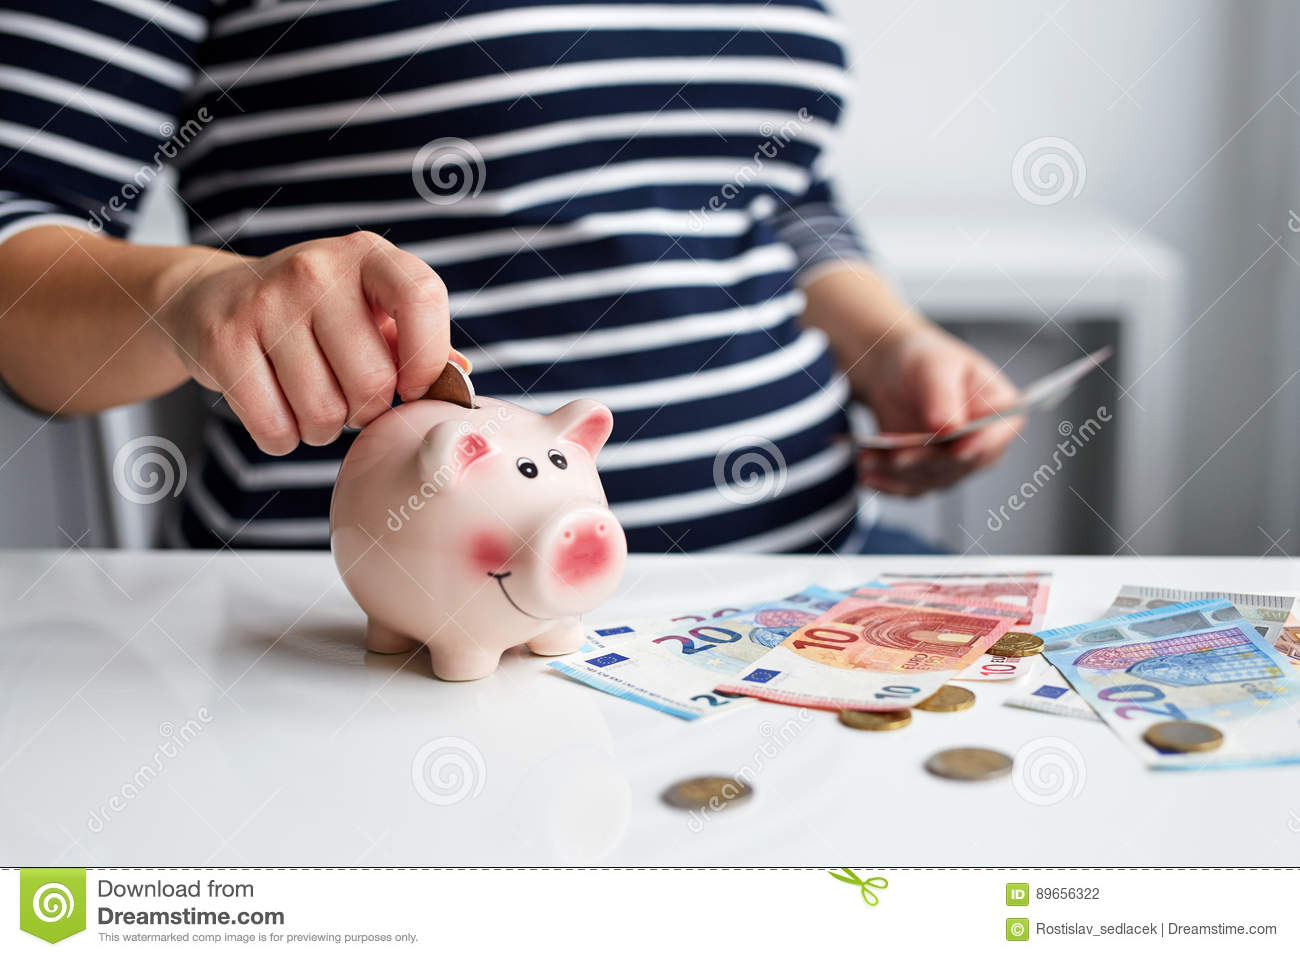 Pregnant Woman Putting Coin Into Piggy Bank Stock Photo